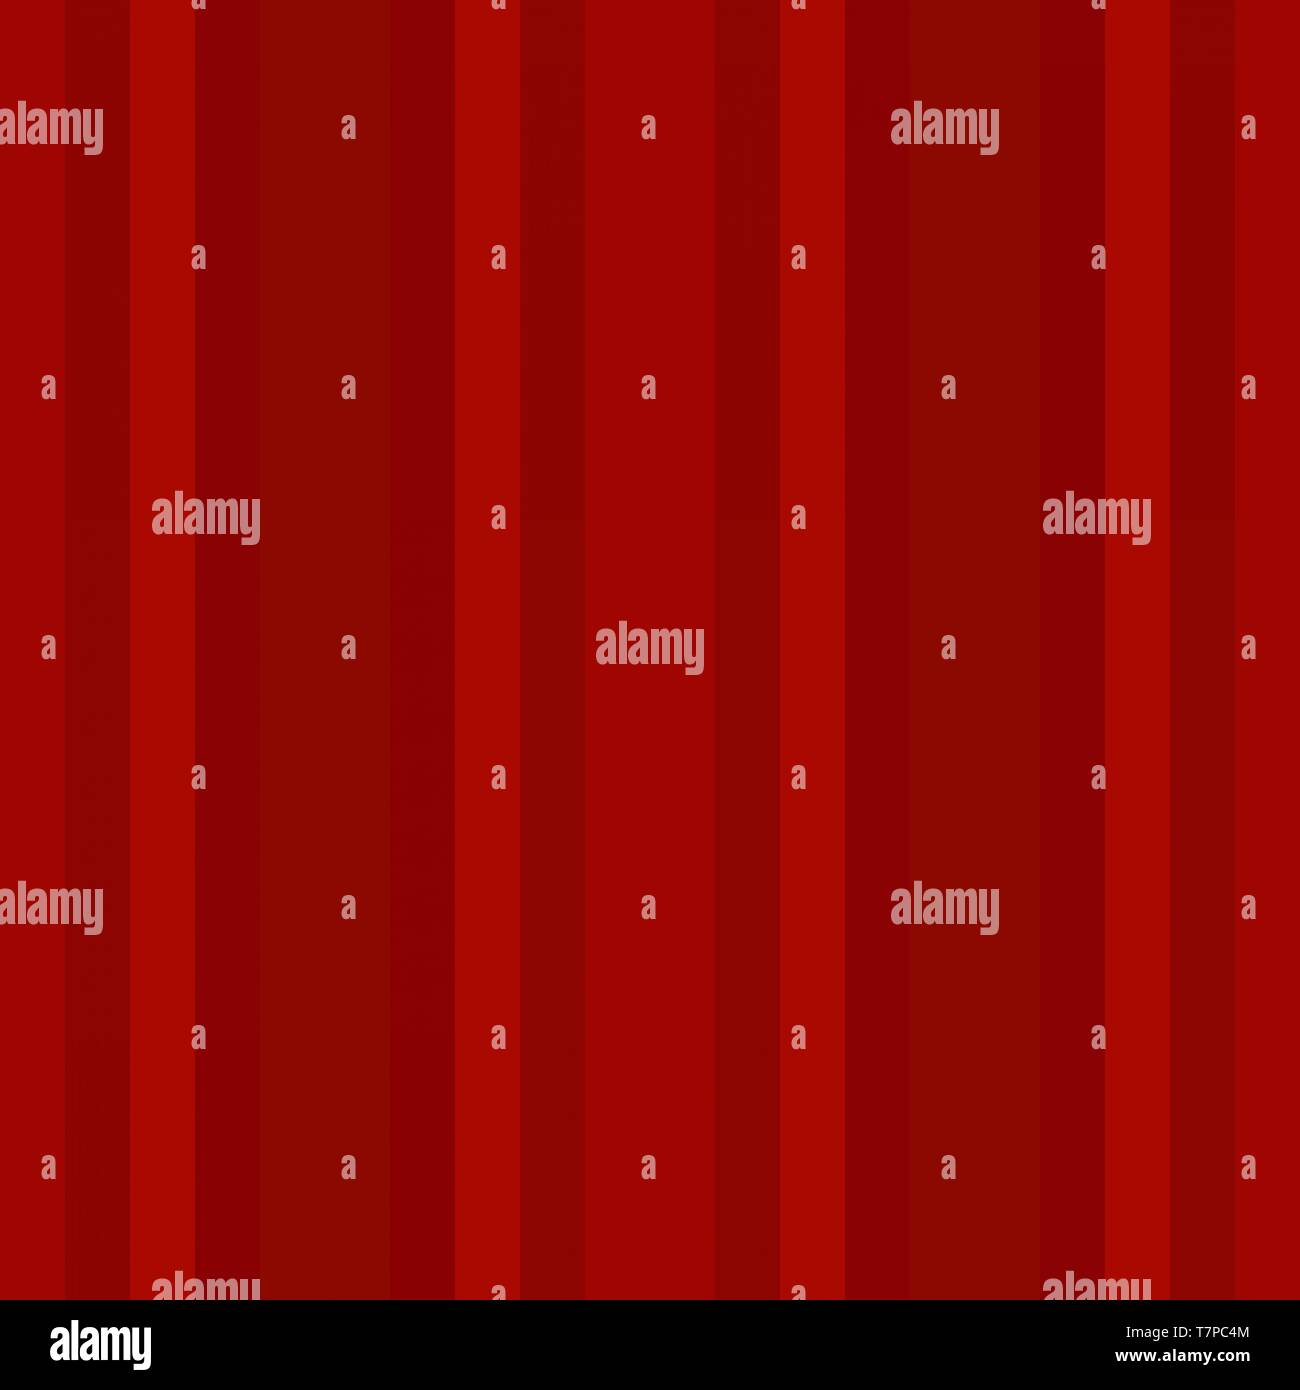 Vivid Color Vertical Lines With Strong Red And Maroon Colors